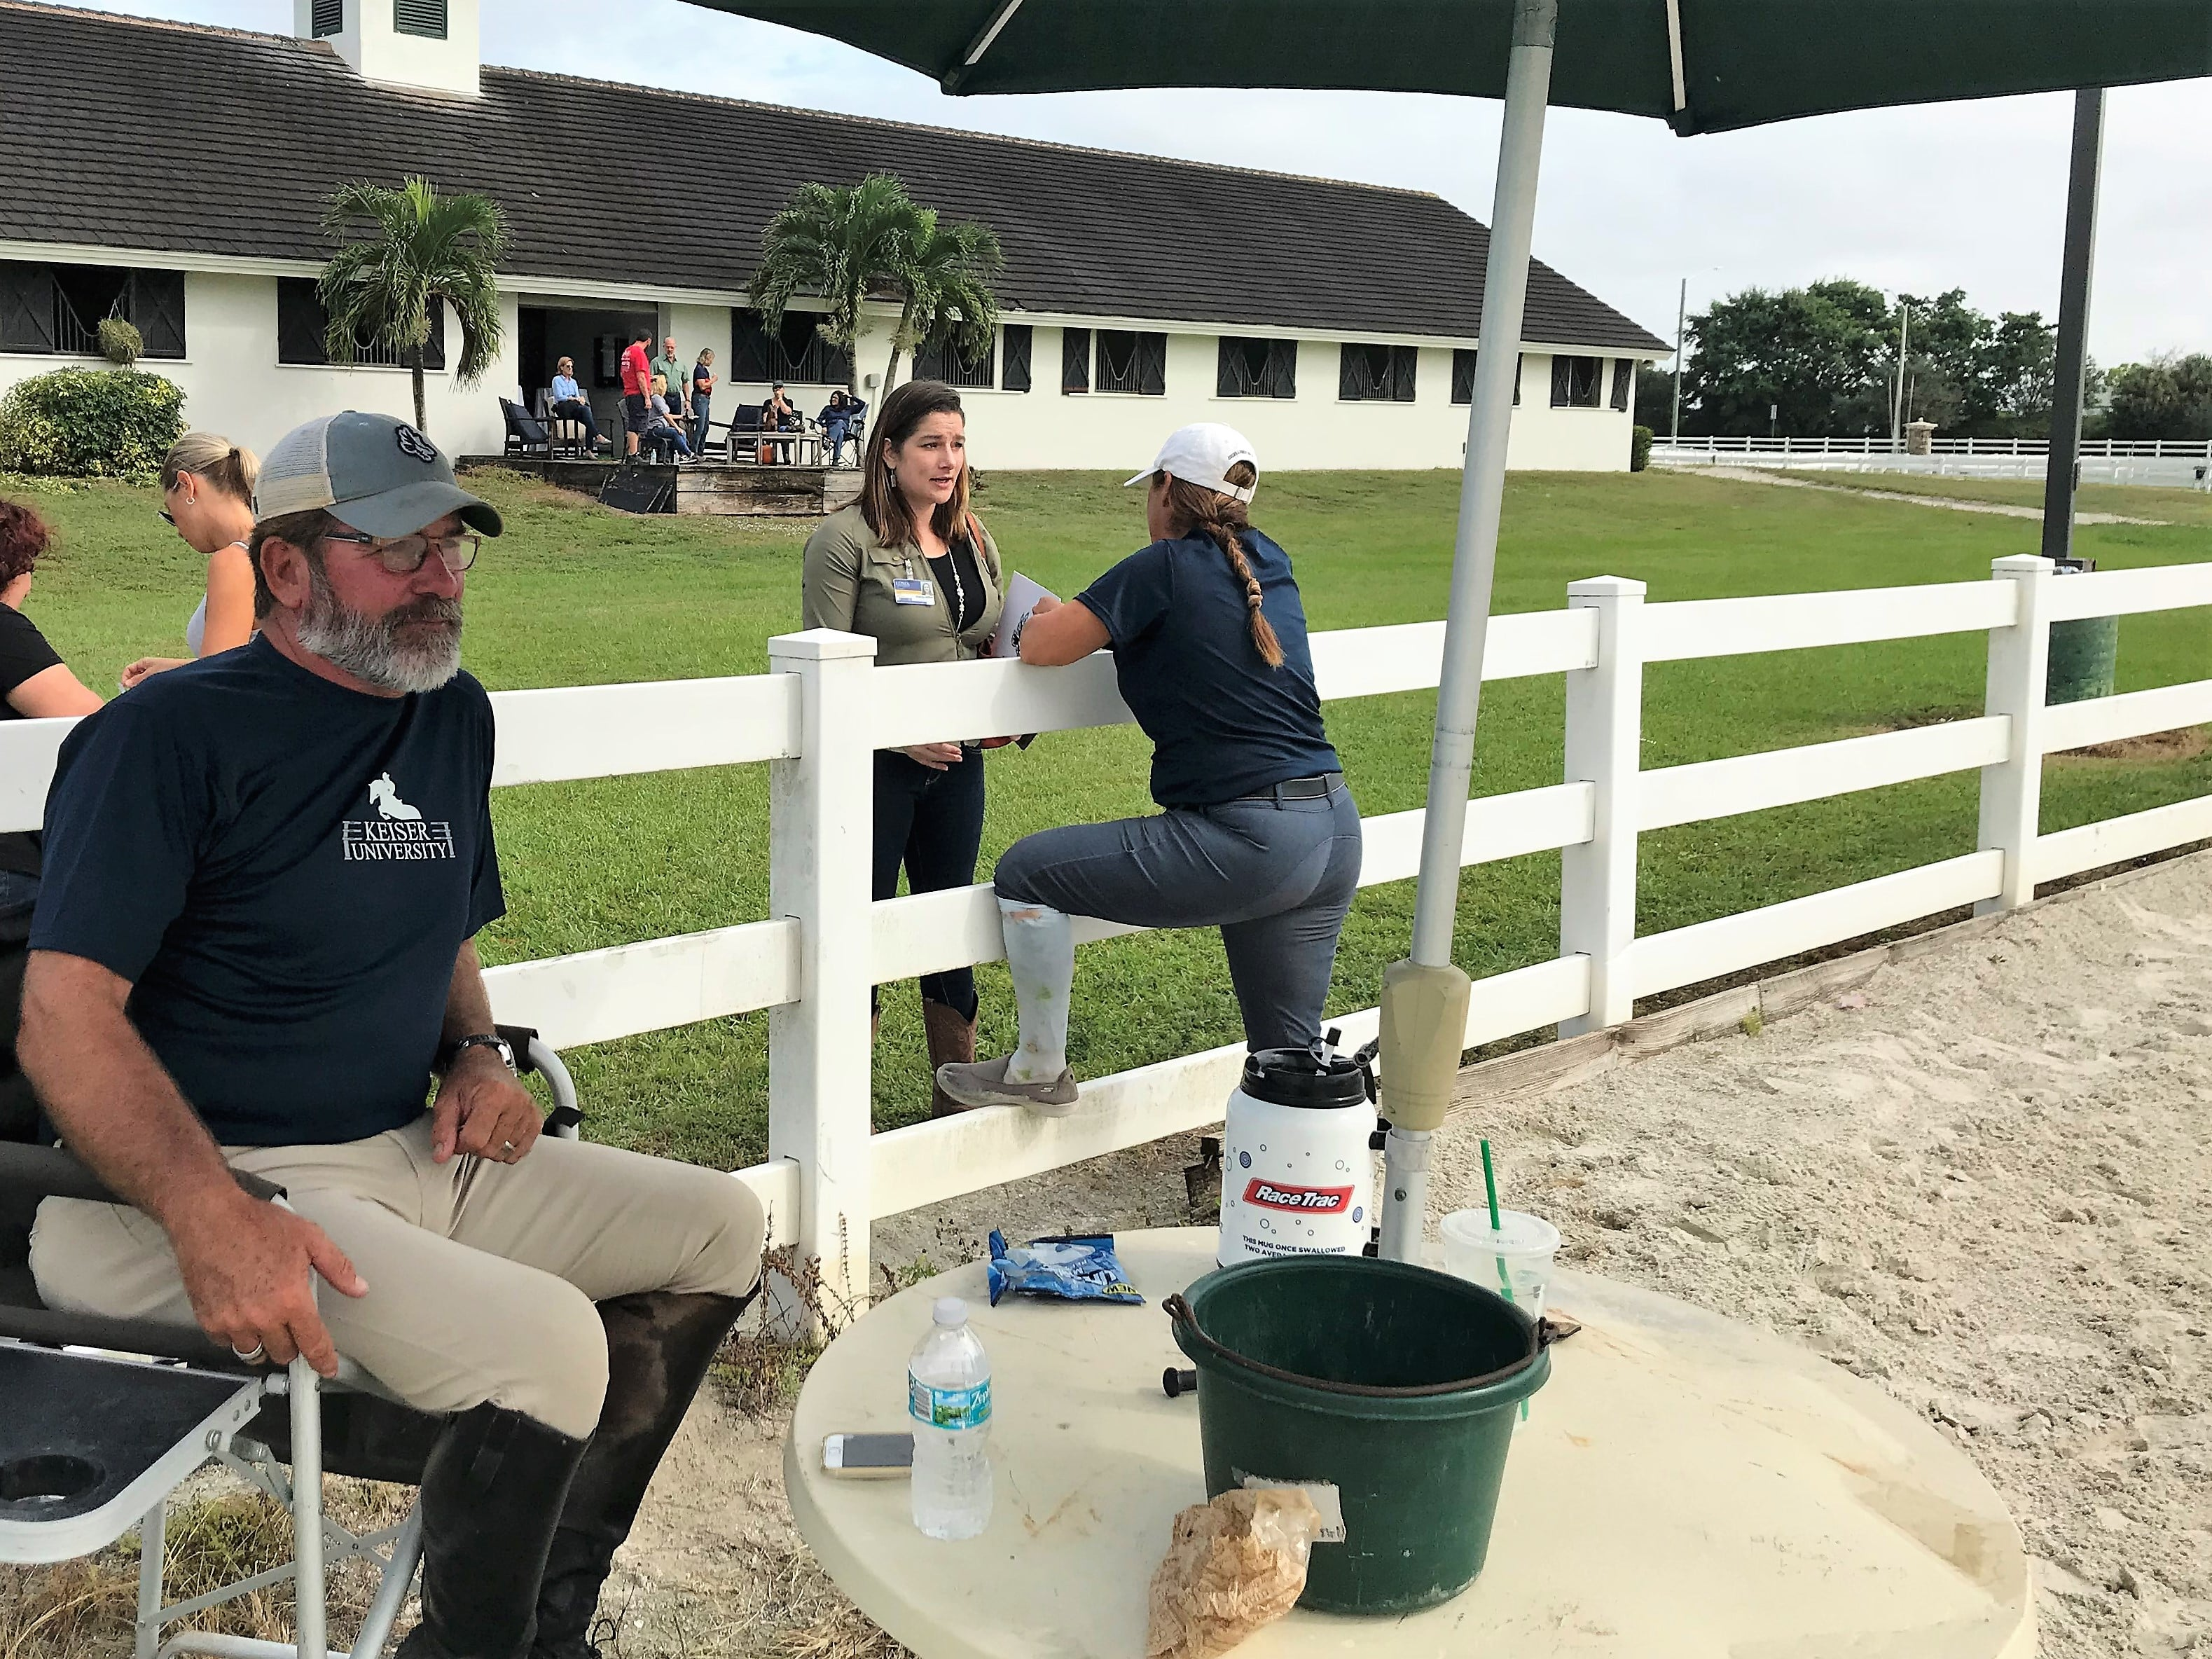 Equestrian Open House Draws Crowd to Hear about New Program